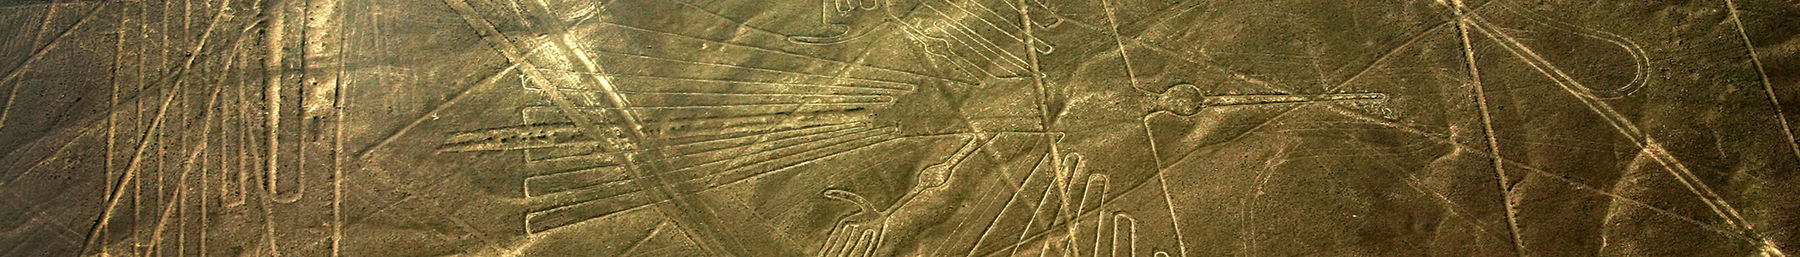 Wikivoyage banner Nazca lines.jpg